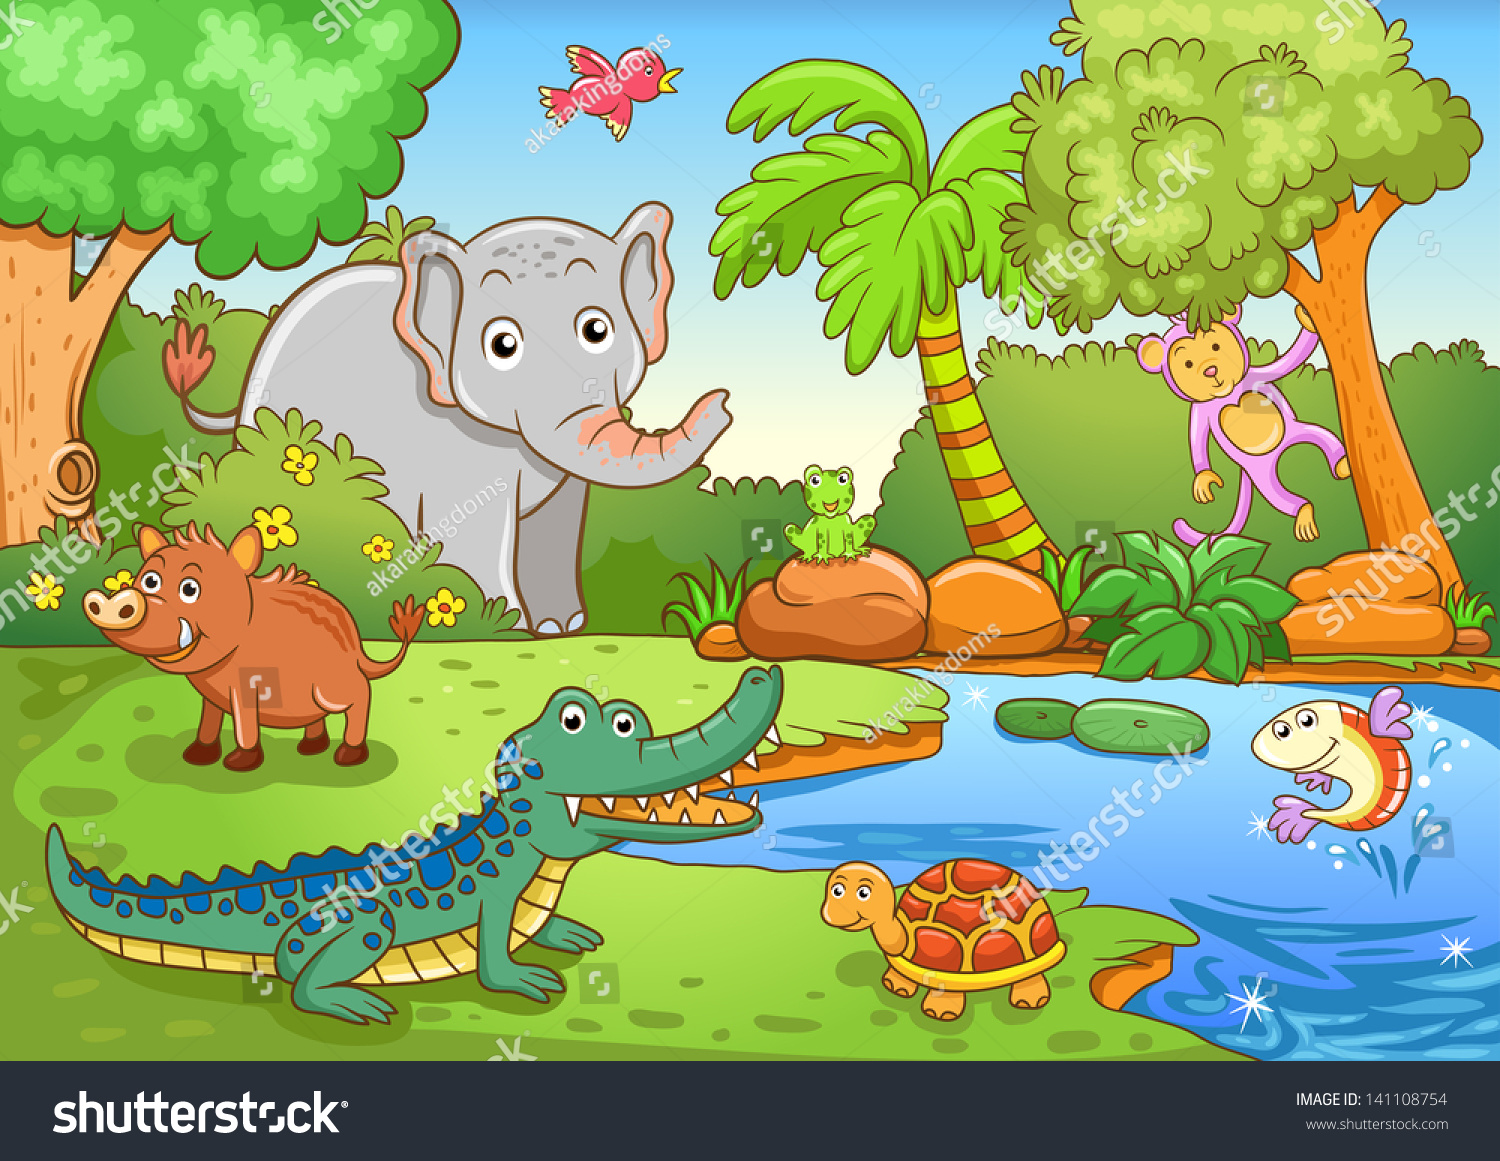 wild boar life cycle diagram animals forest eps10 file simple gradients stock vector  animals forest eps10 file simple gradients stock vector